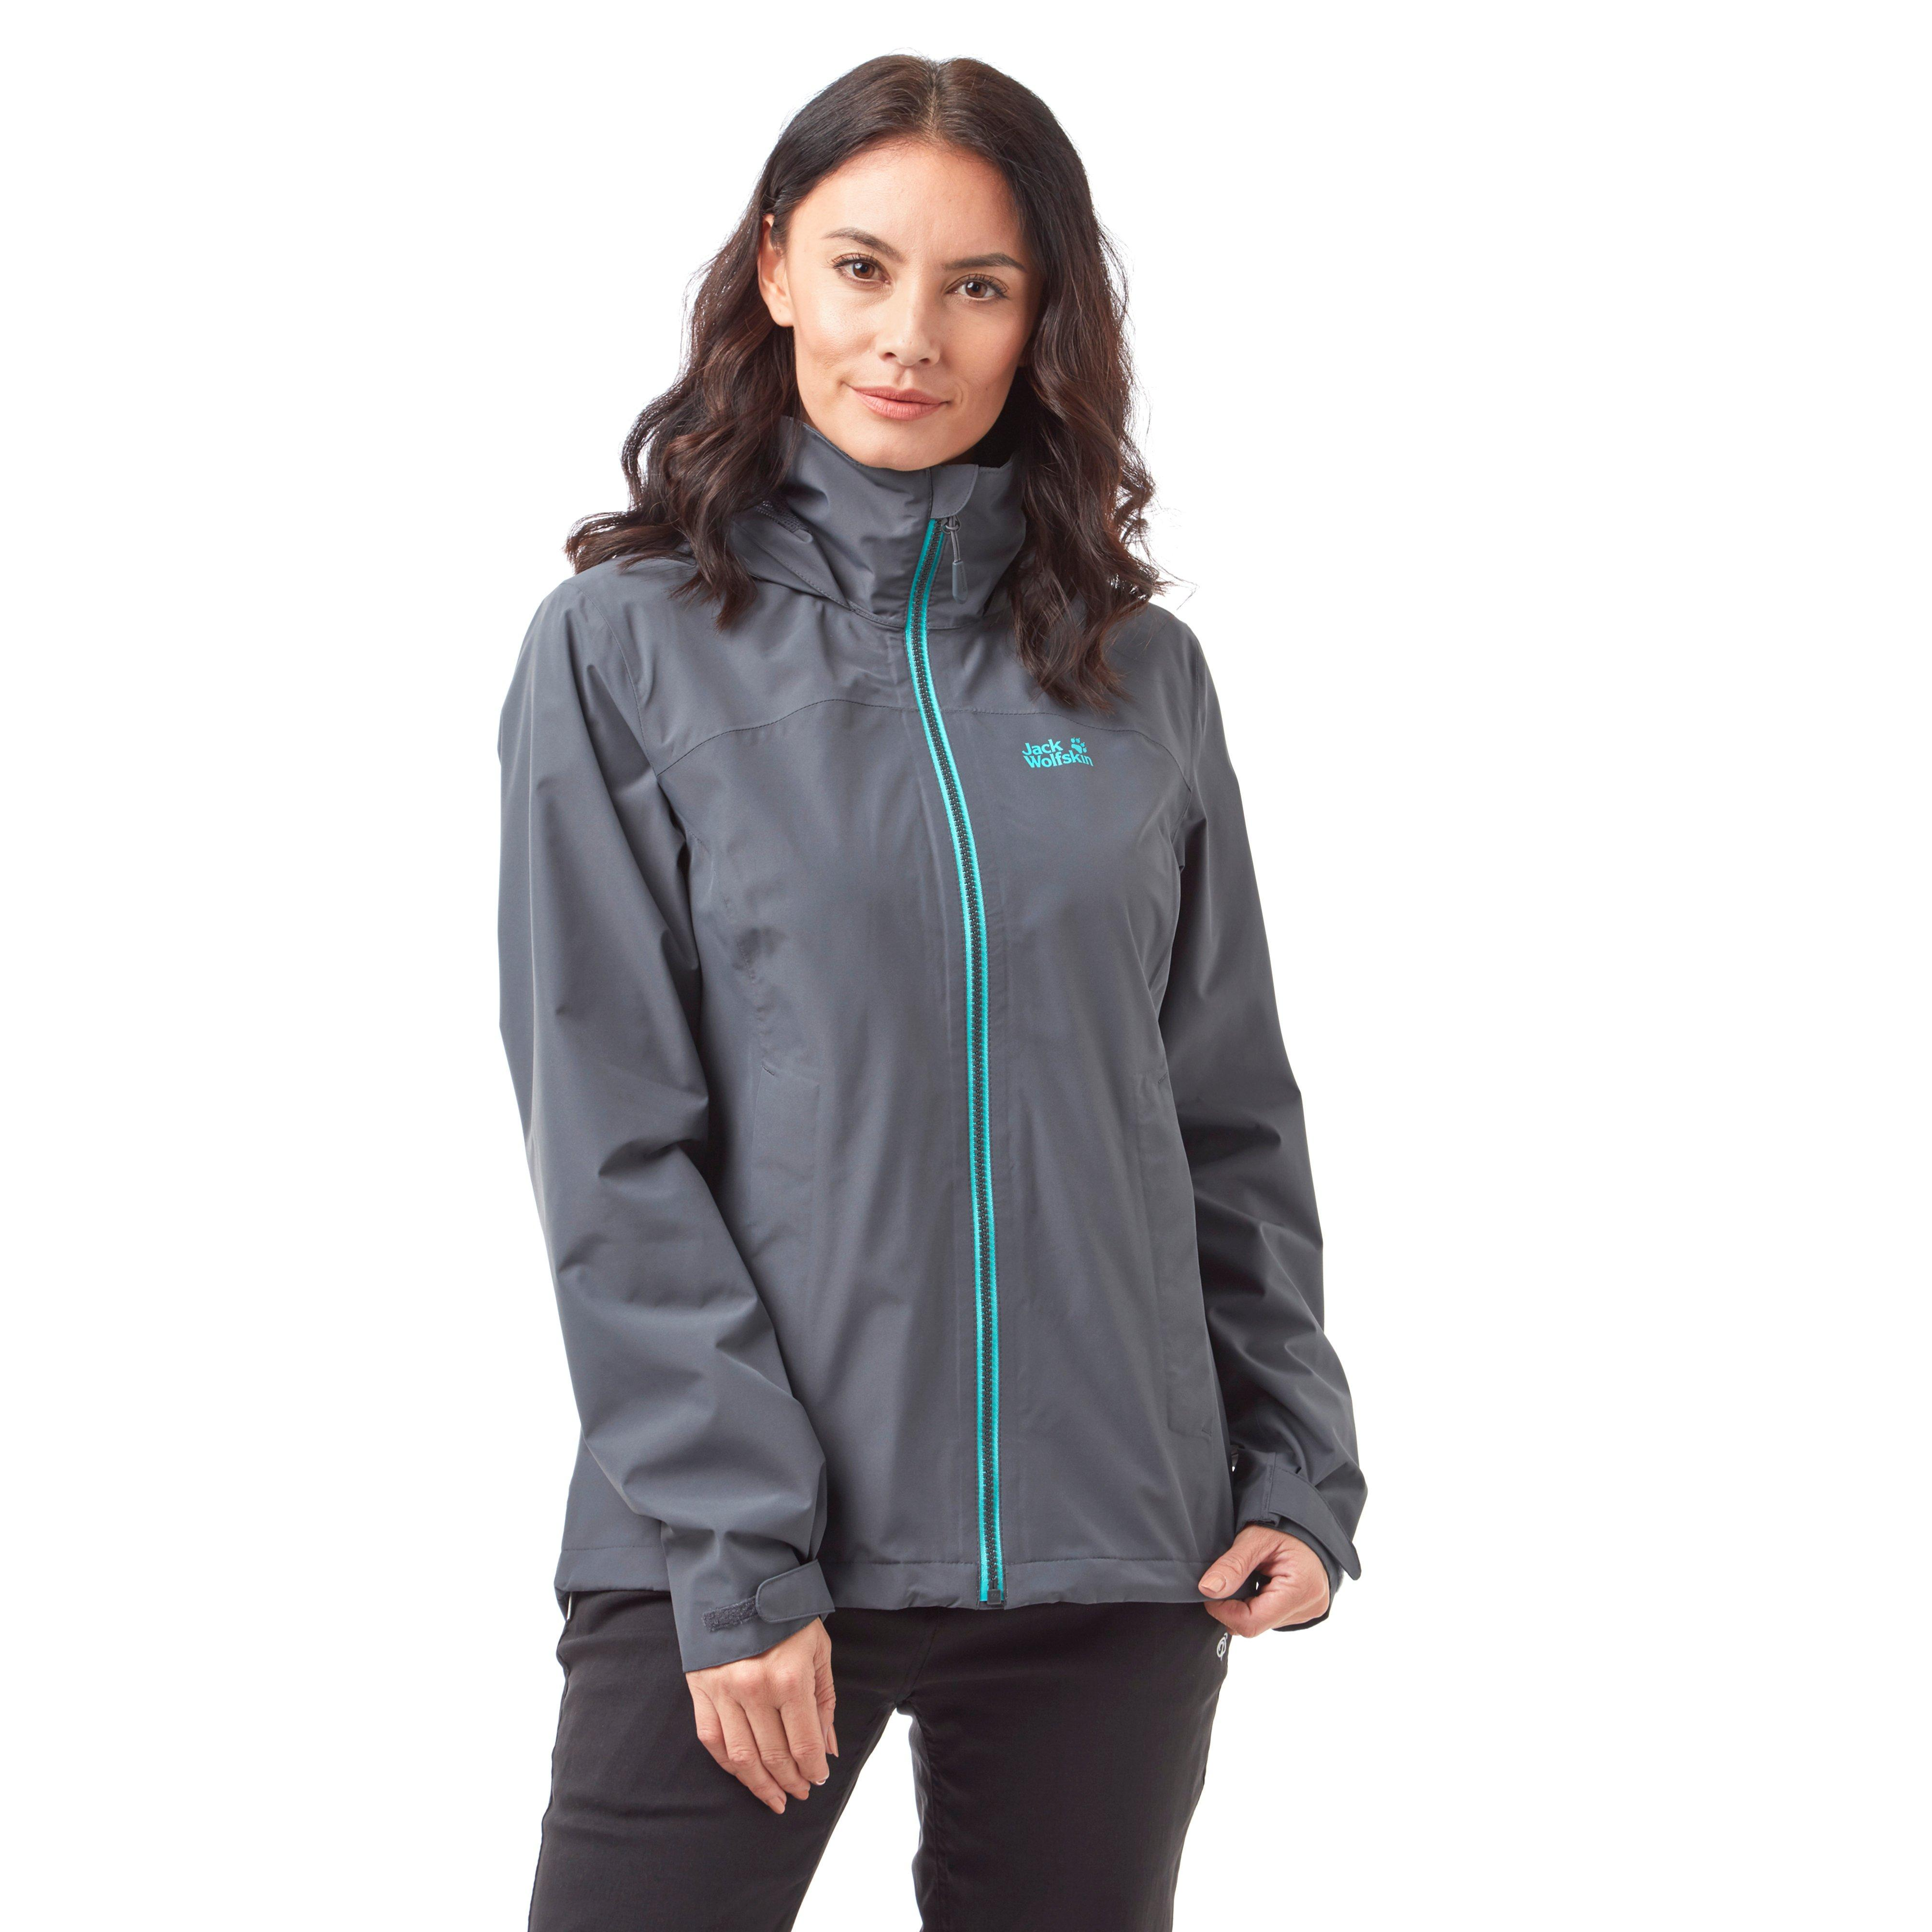 the best best wholesaler new styles Details about Jack Wolfskin EVANDALE